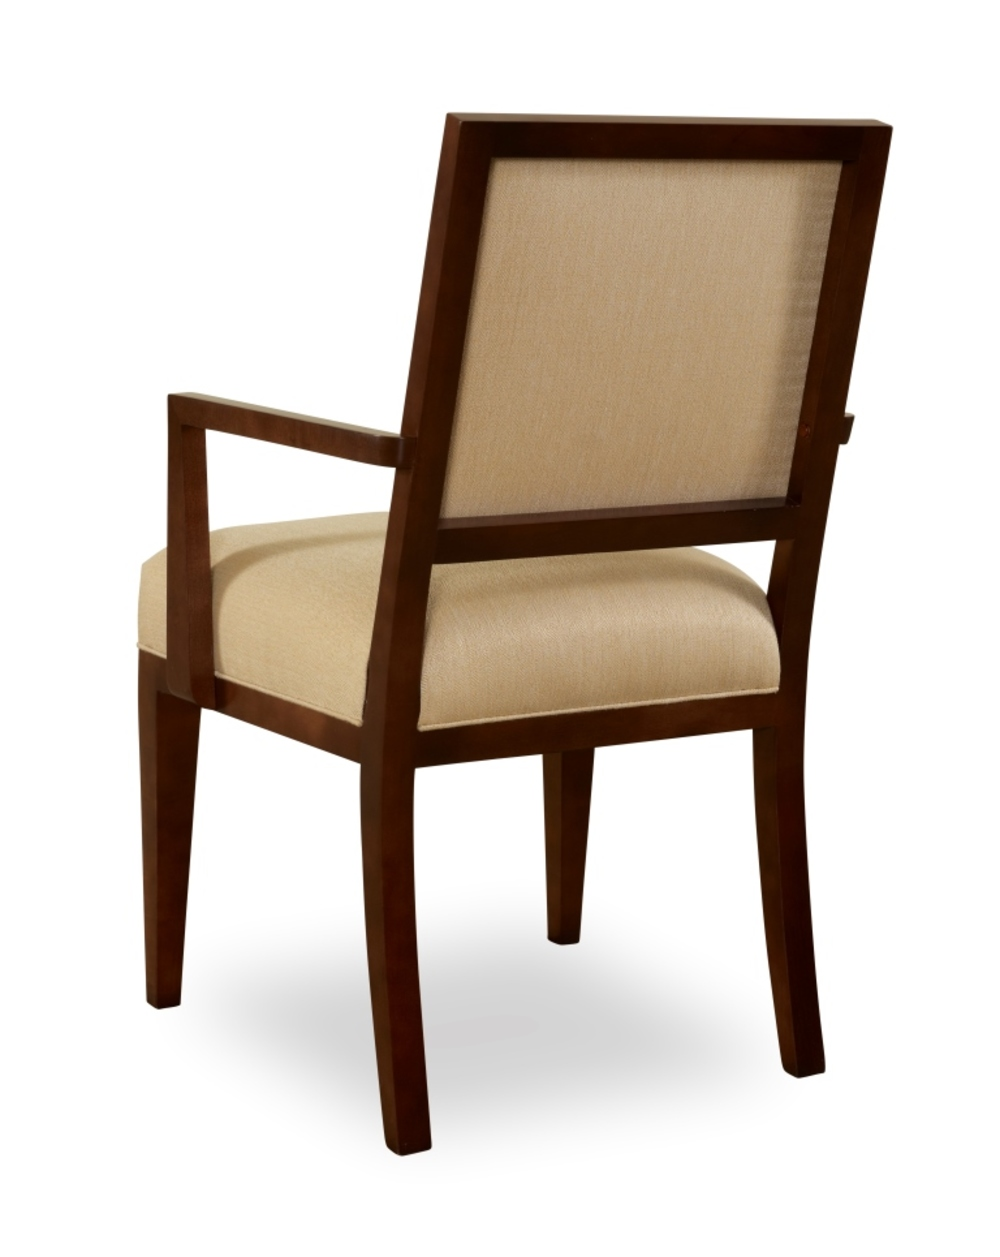 Designmaster Furniture - Geneva Arm Chair